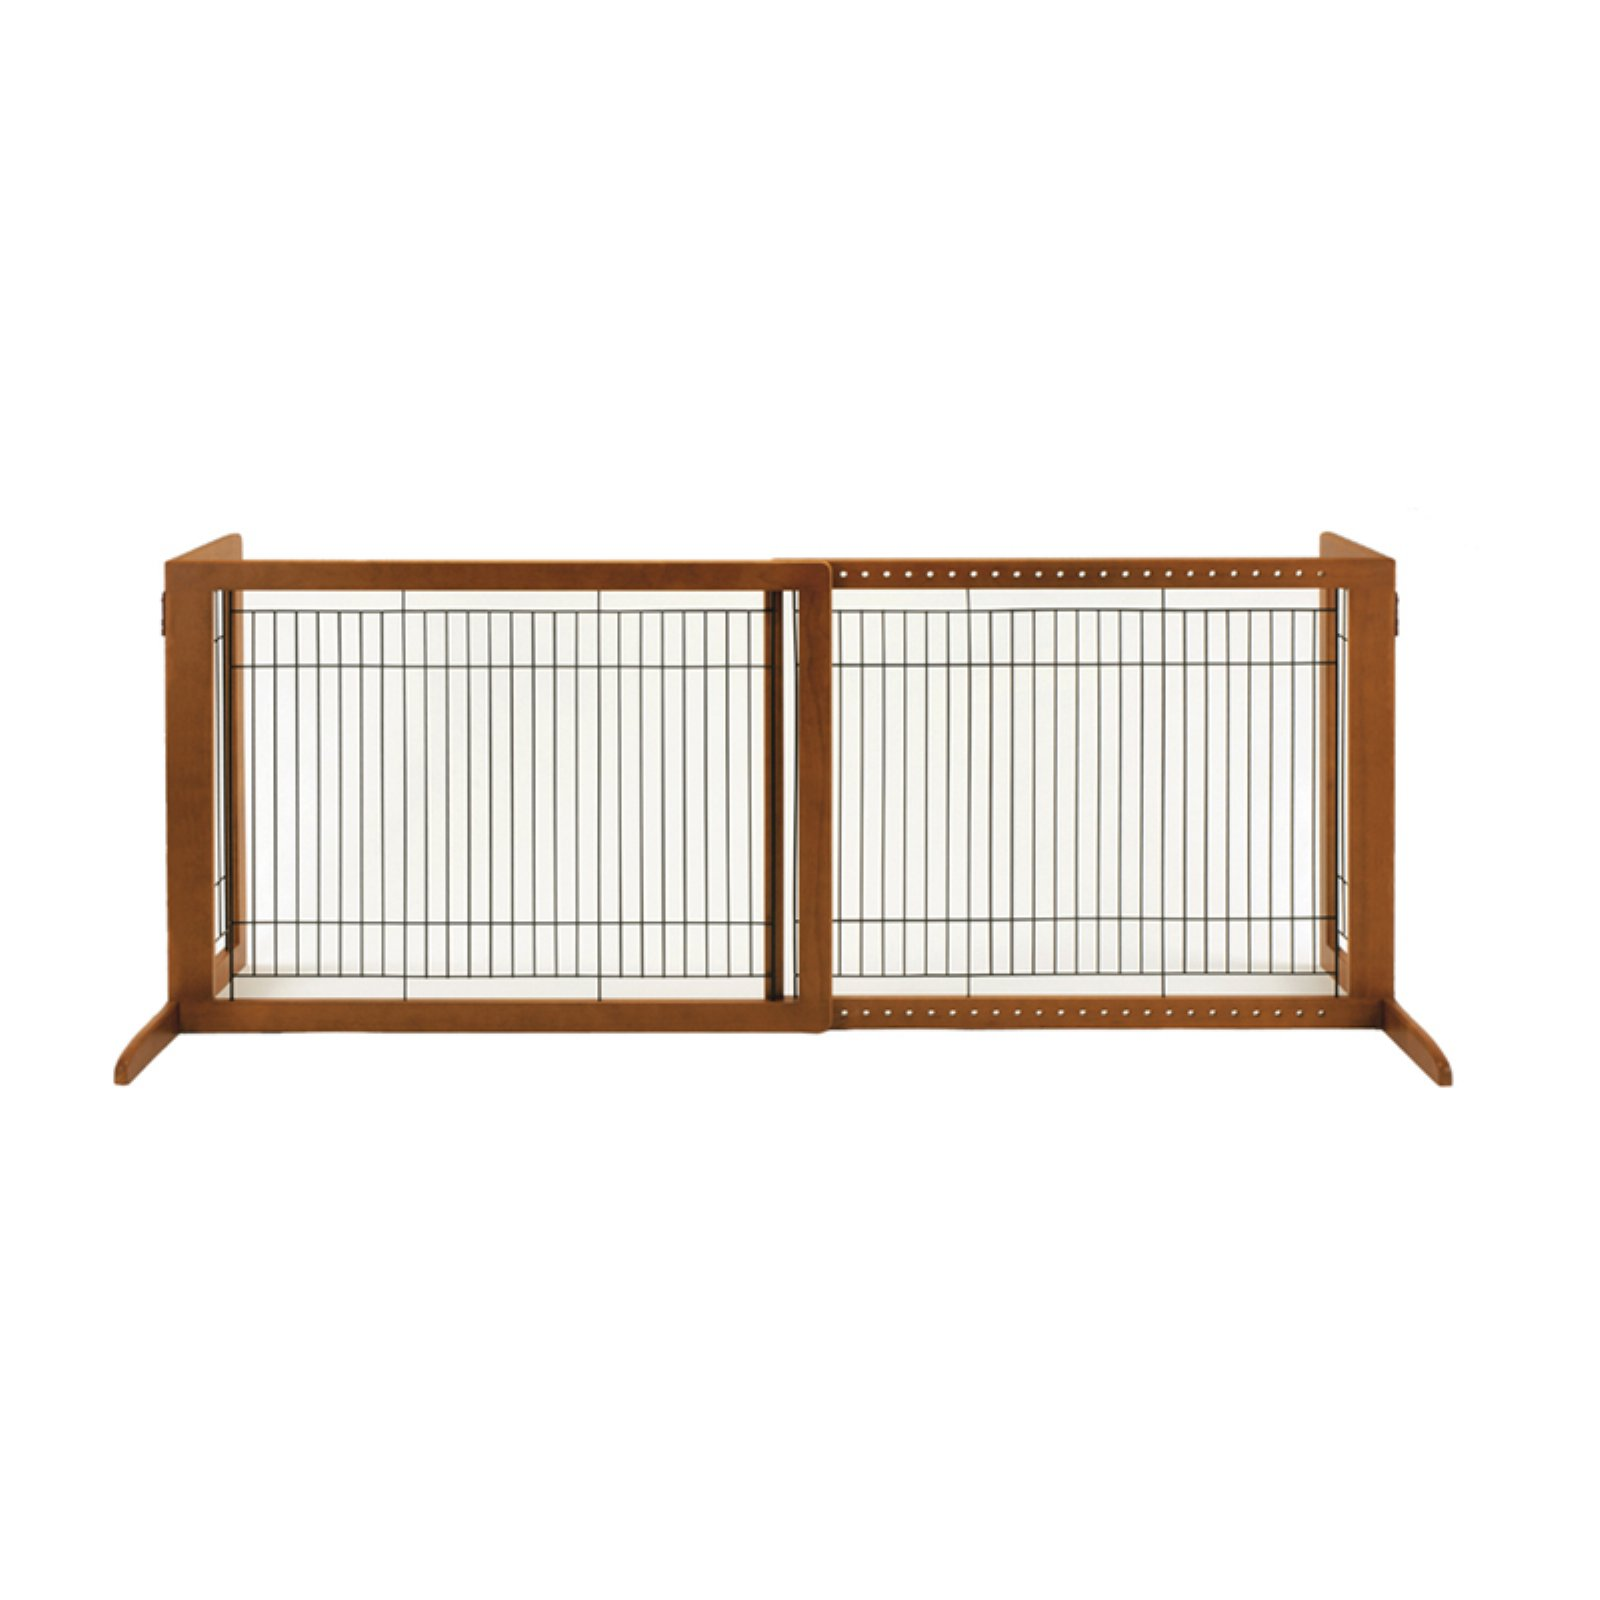 Richell Freestanding HL Pet Gate, Brown